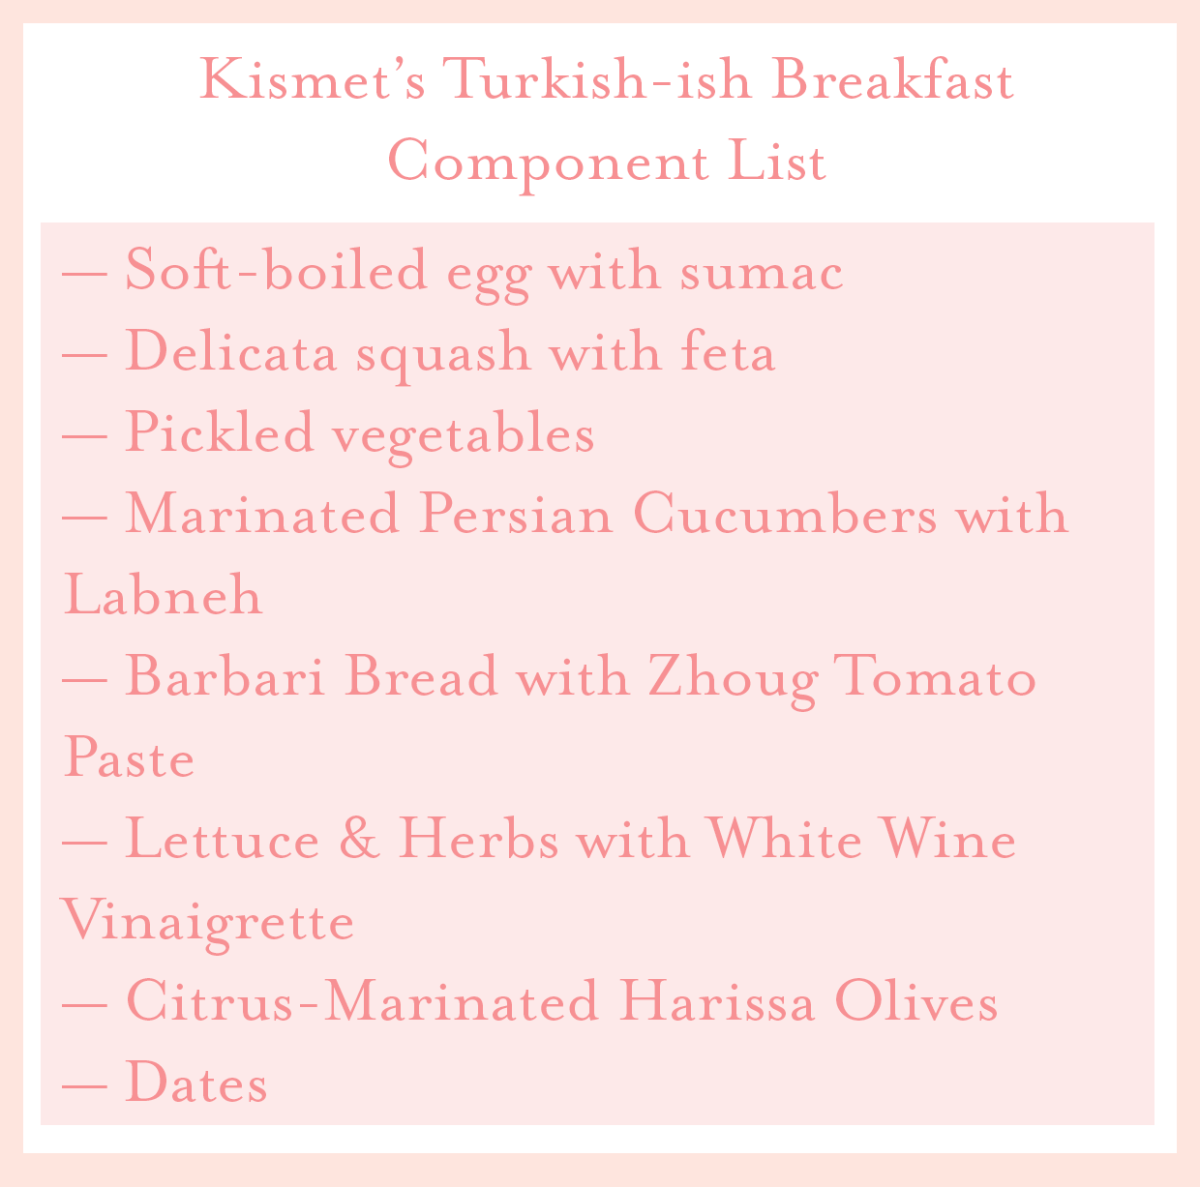 kismet turkish breakfast component list